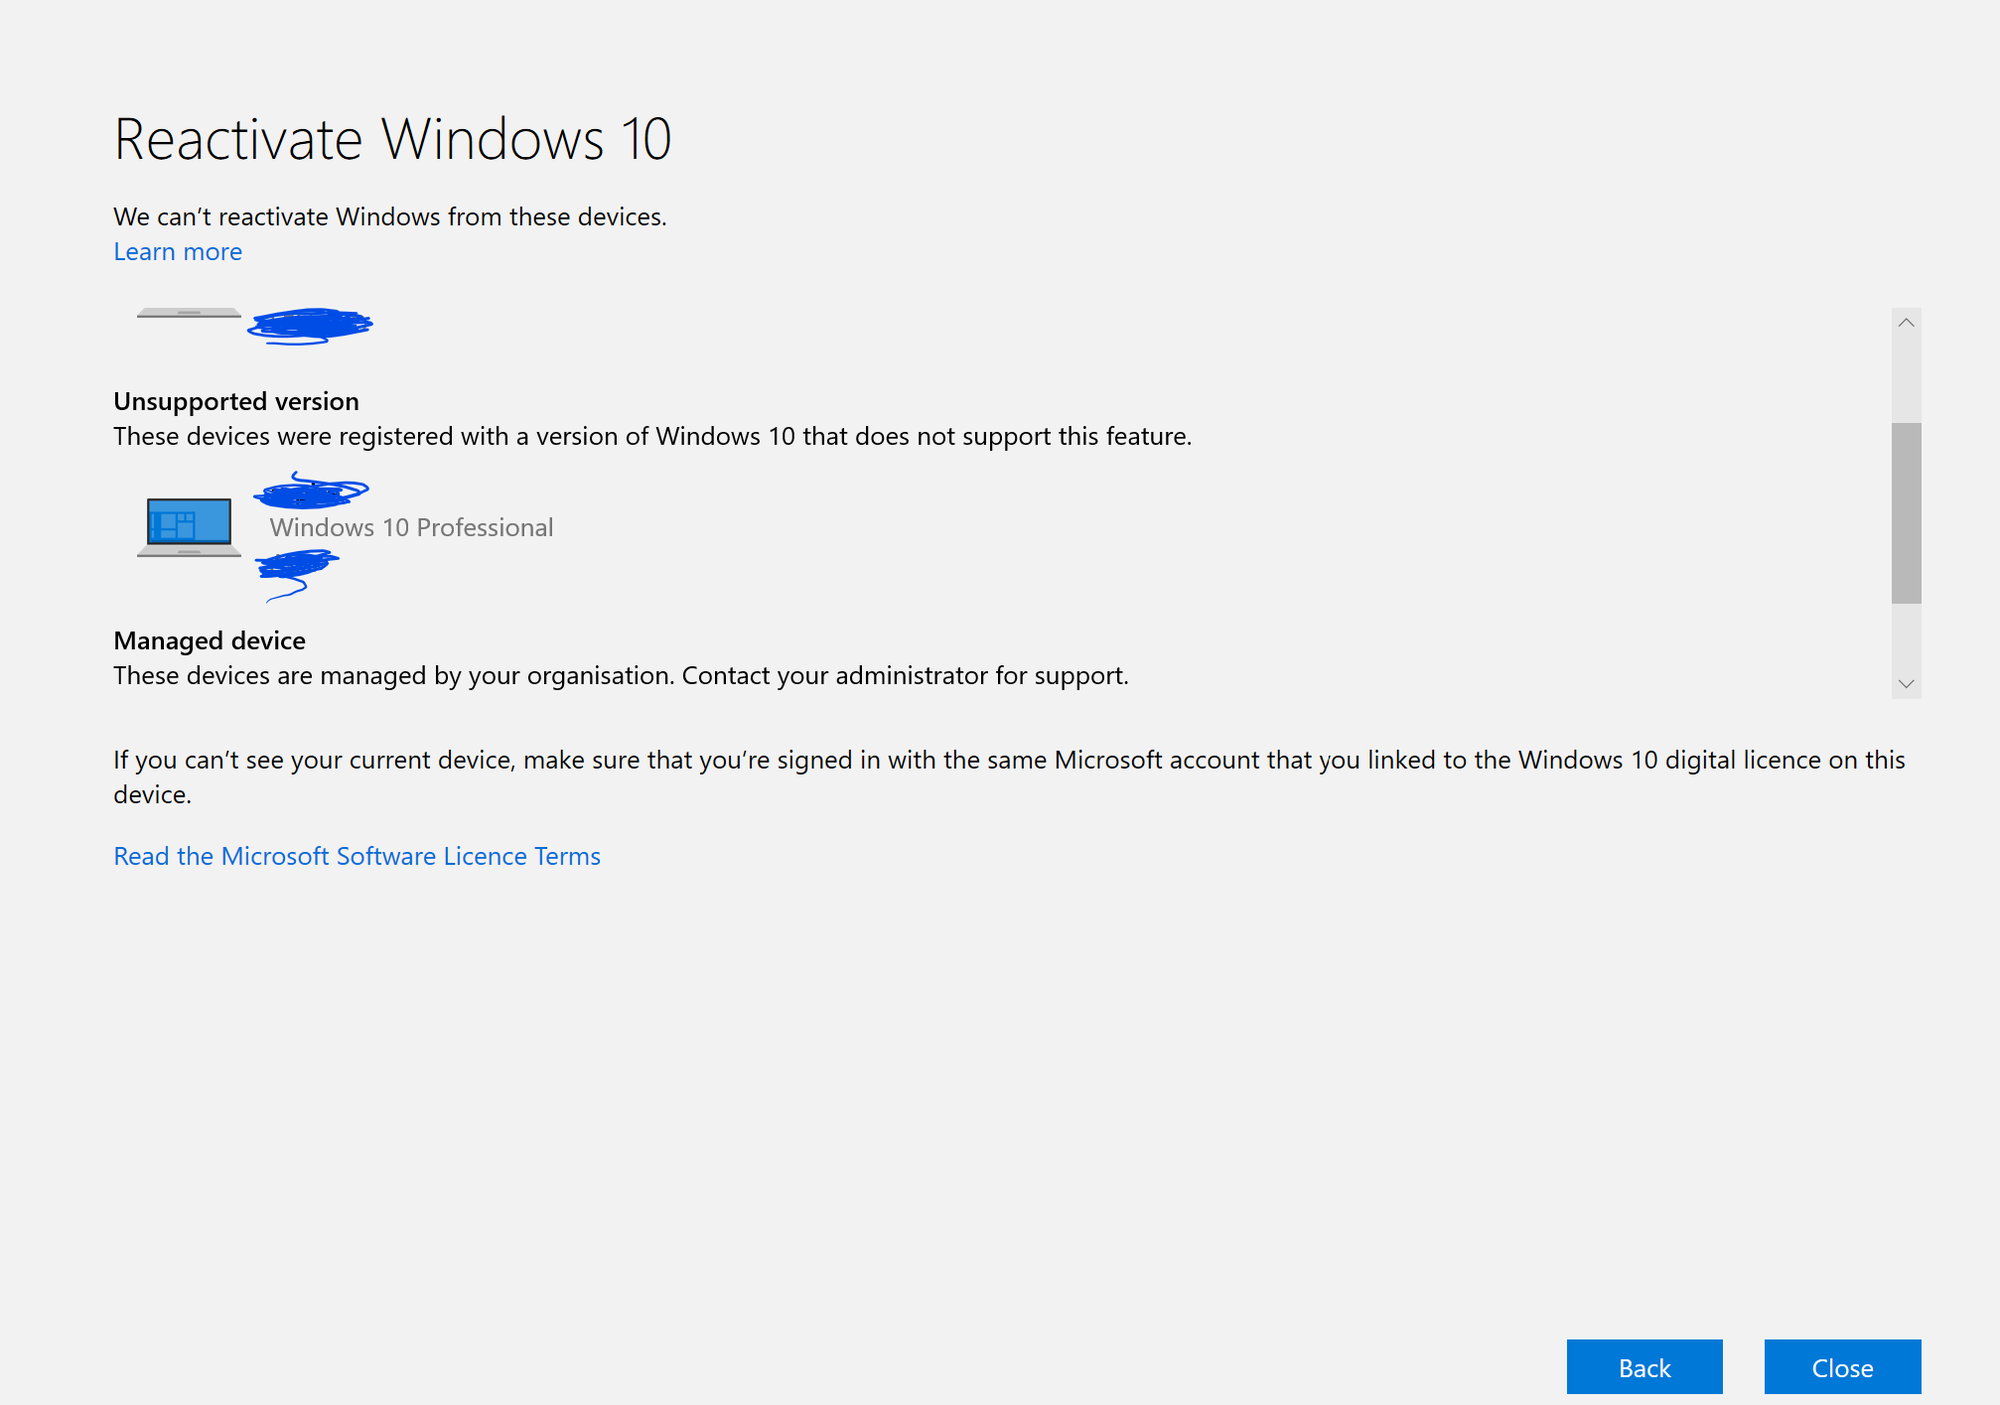 [RESOLVED] Transferring Windows 10 Pro RETAIL license from old computer to new computer 2dc44f90-c647-4f07-9164-3c0115ed0543?upload=true.png